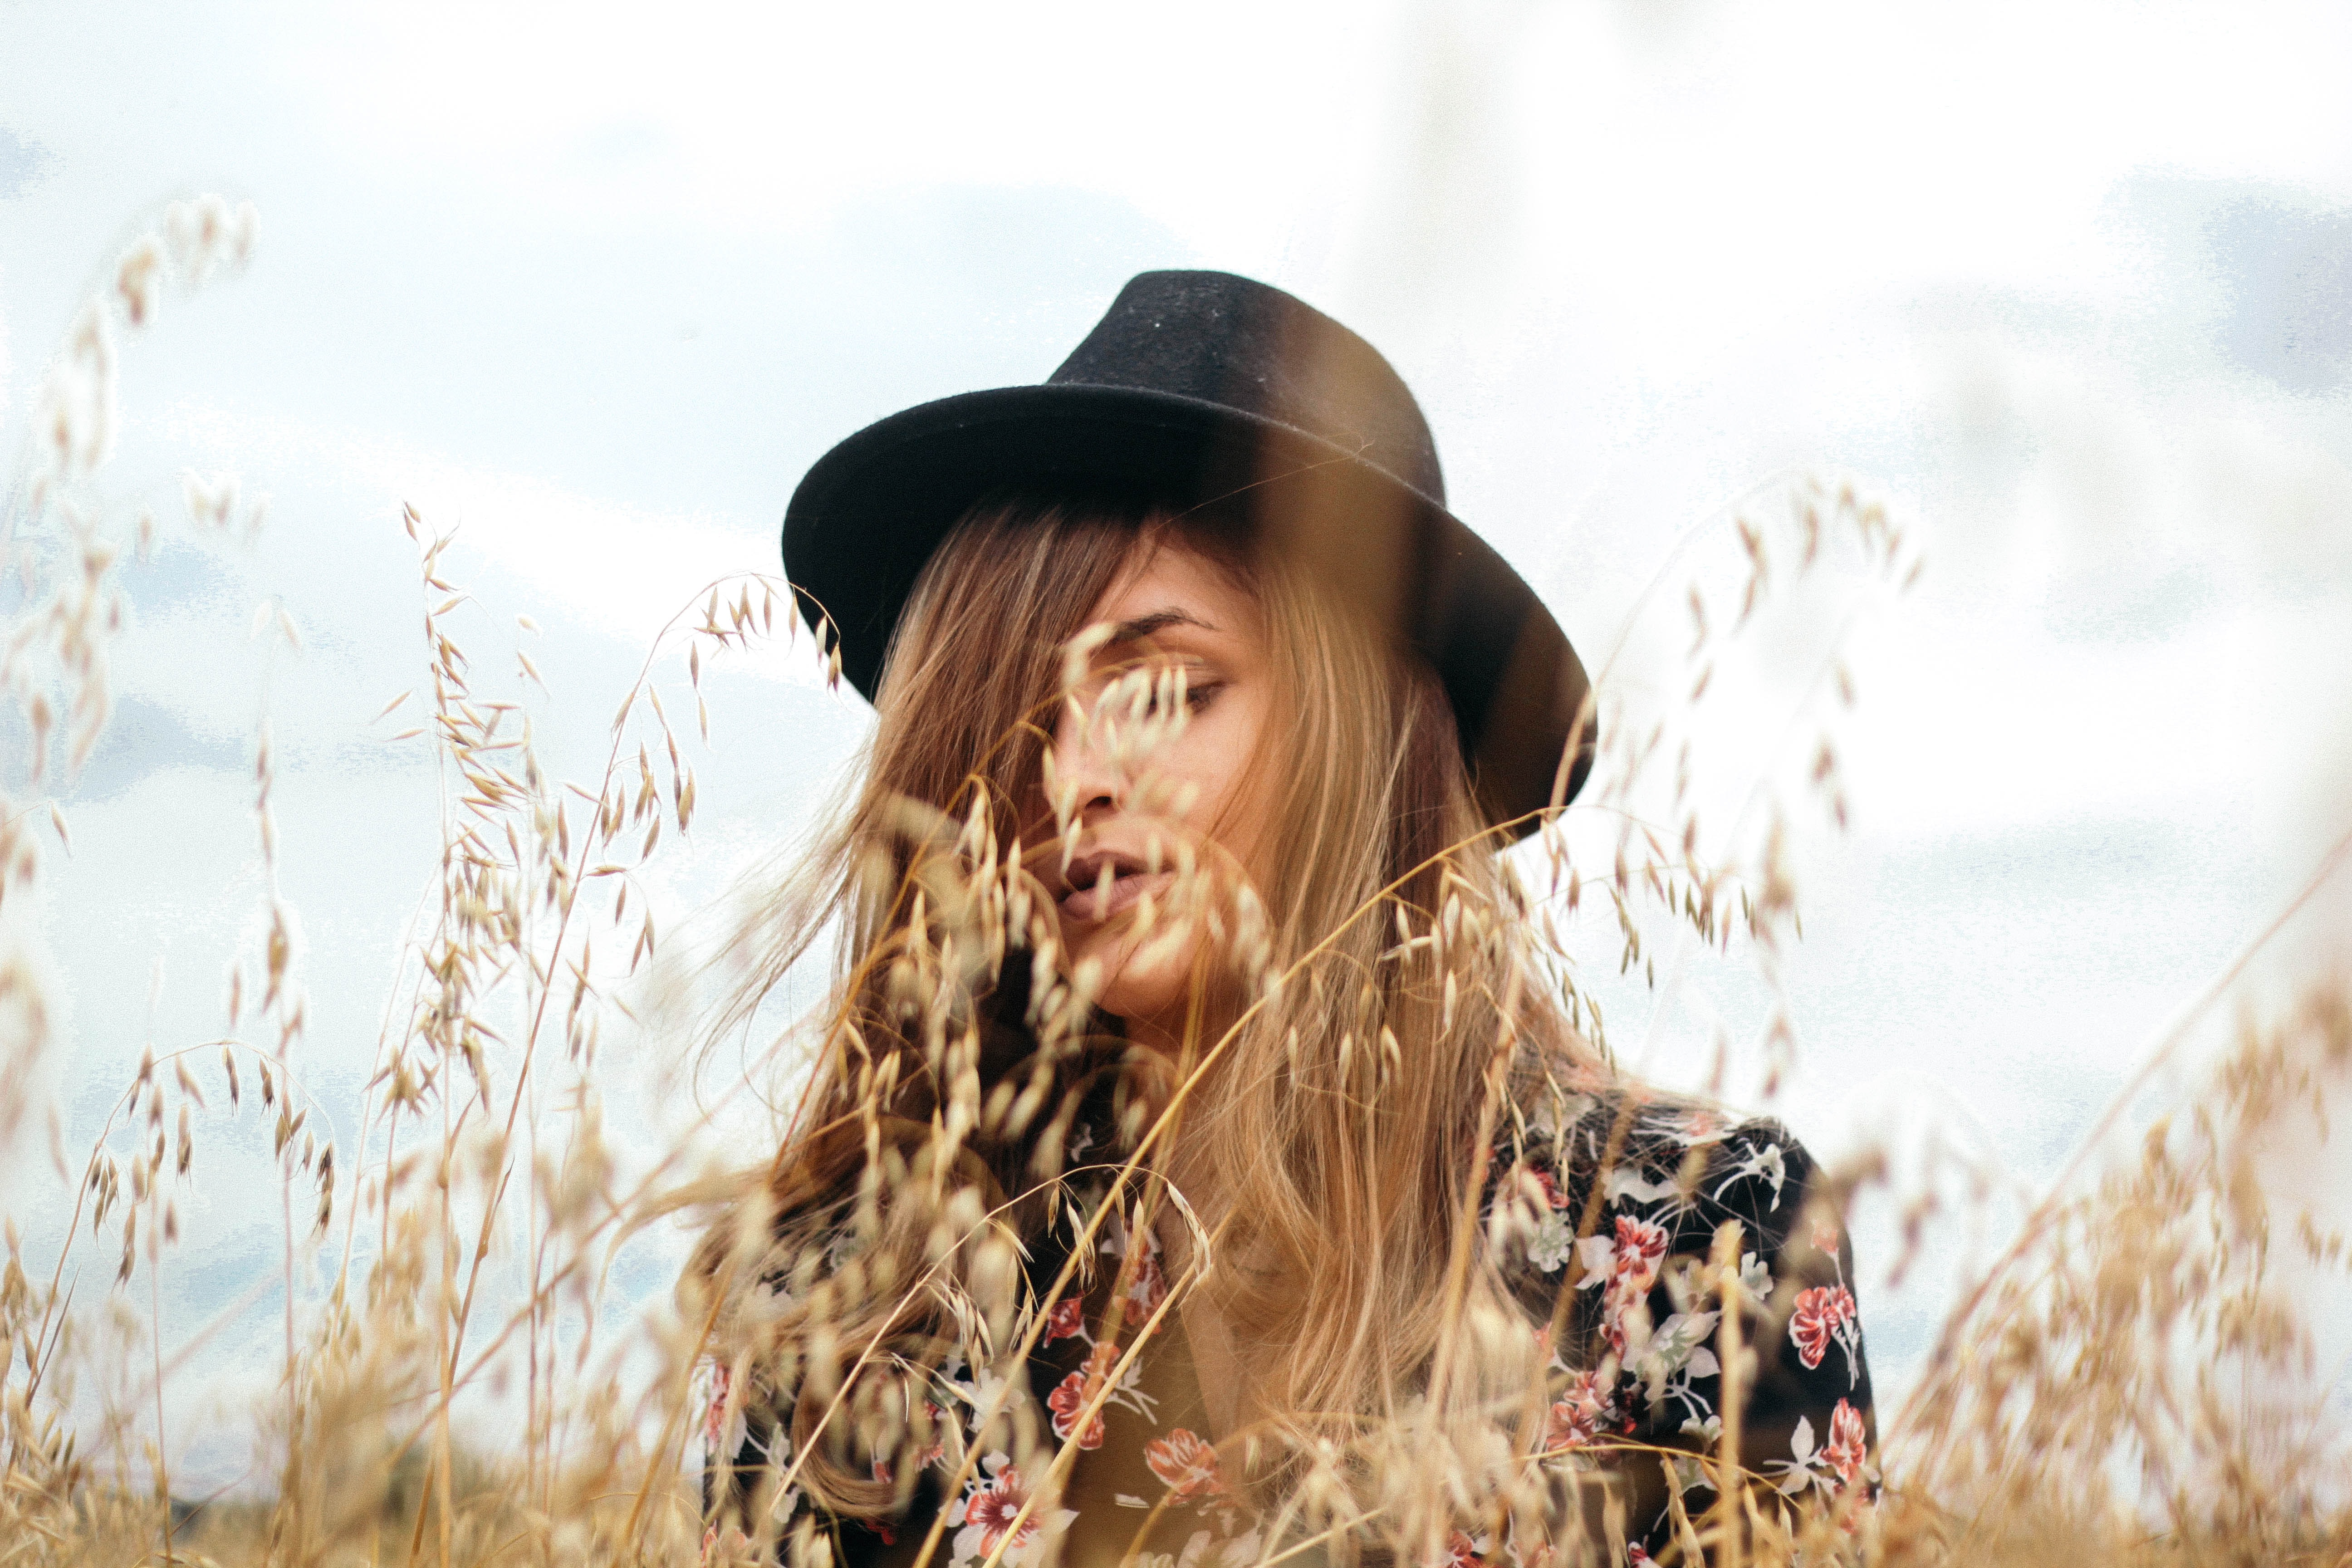 Woman with a black hat standing behind grains of wheat